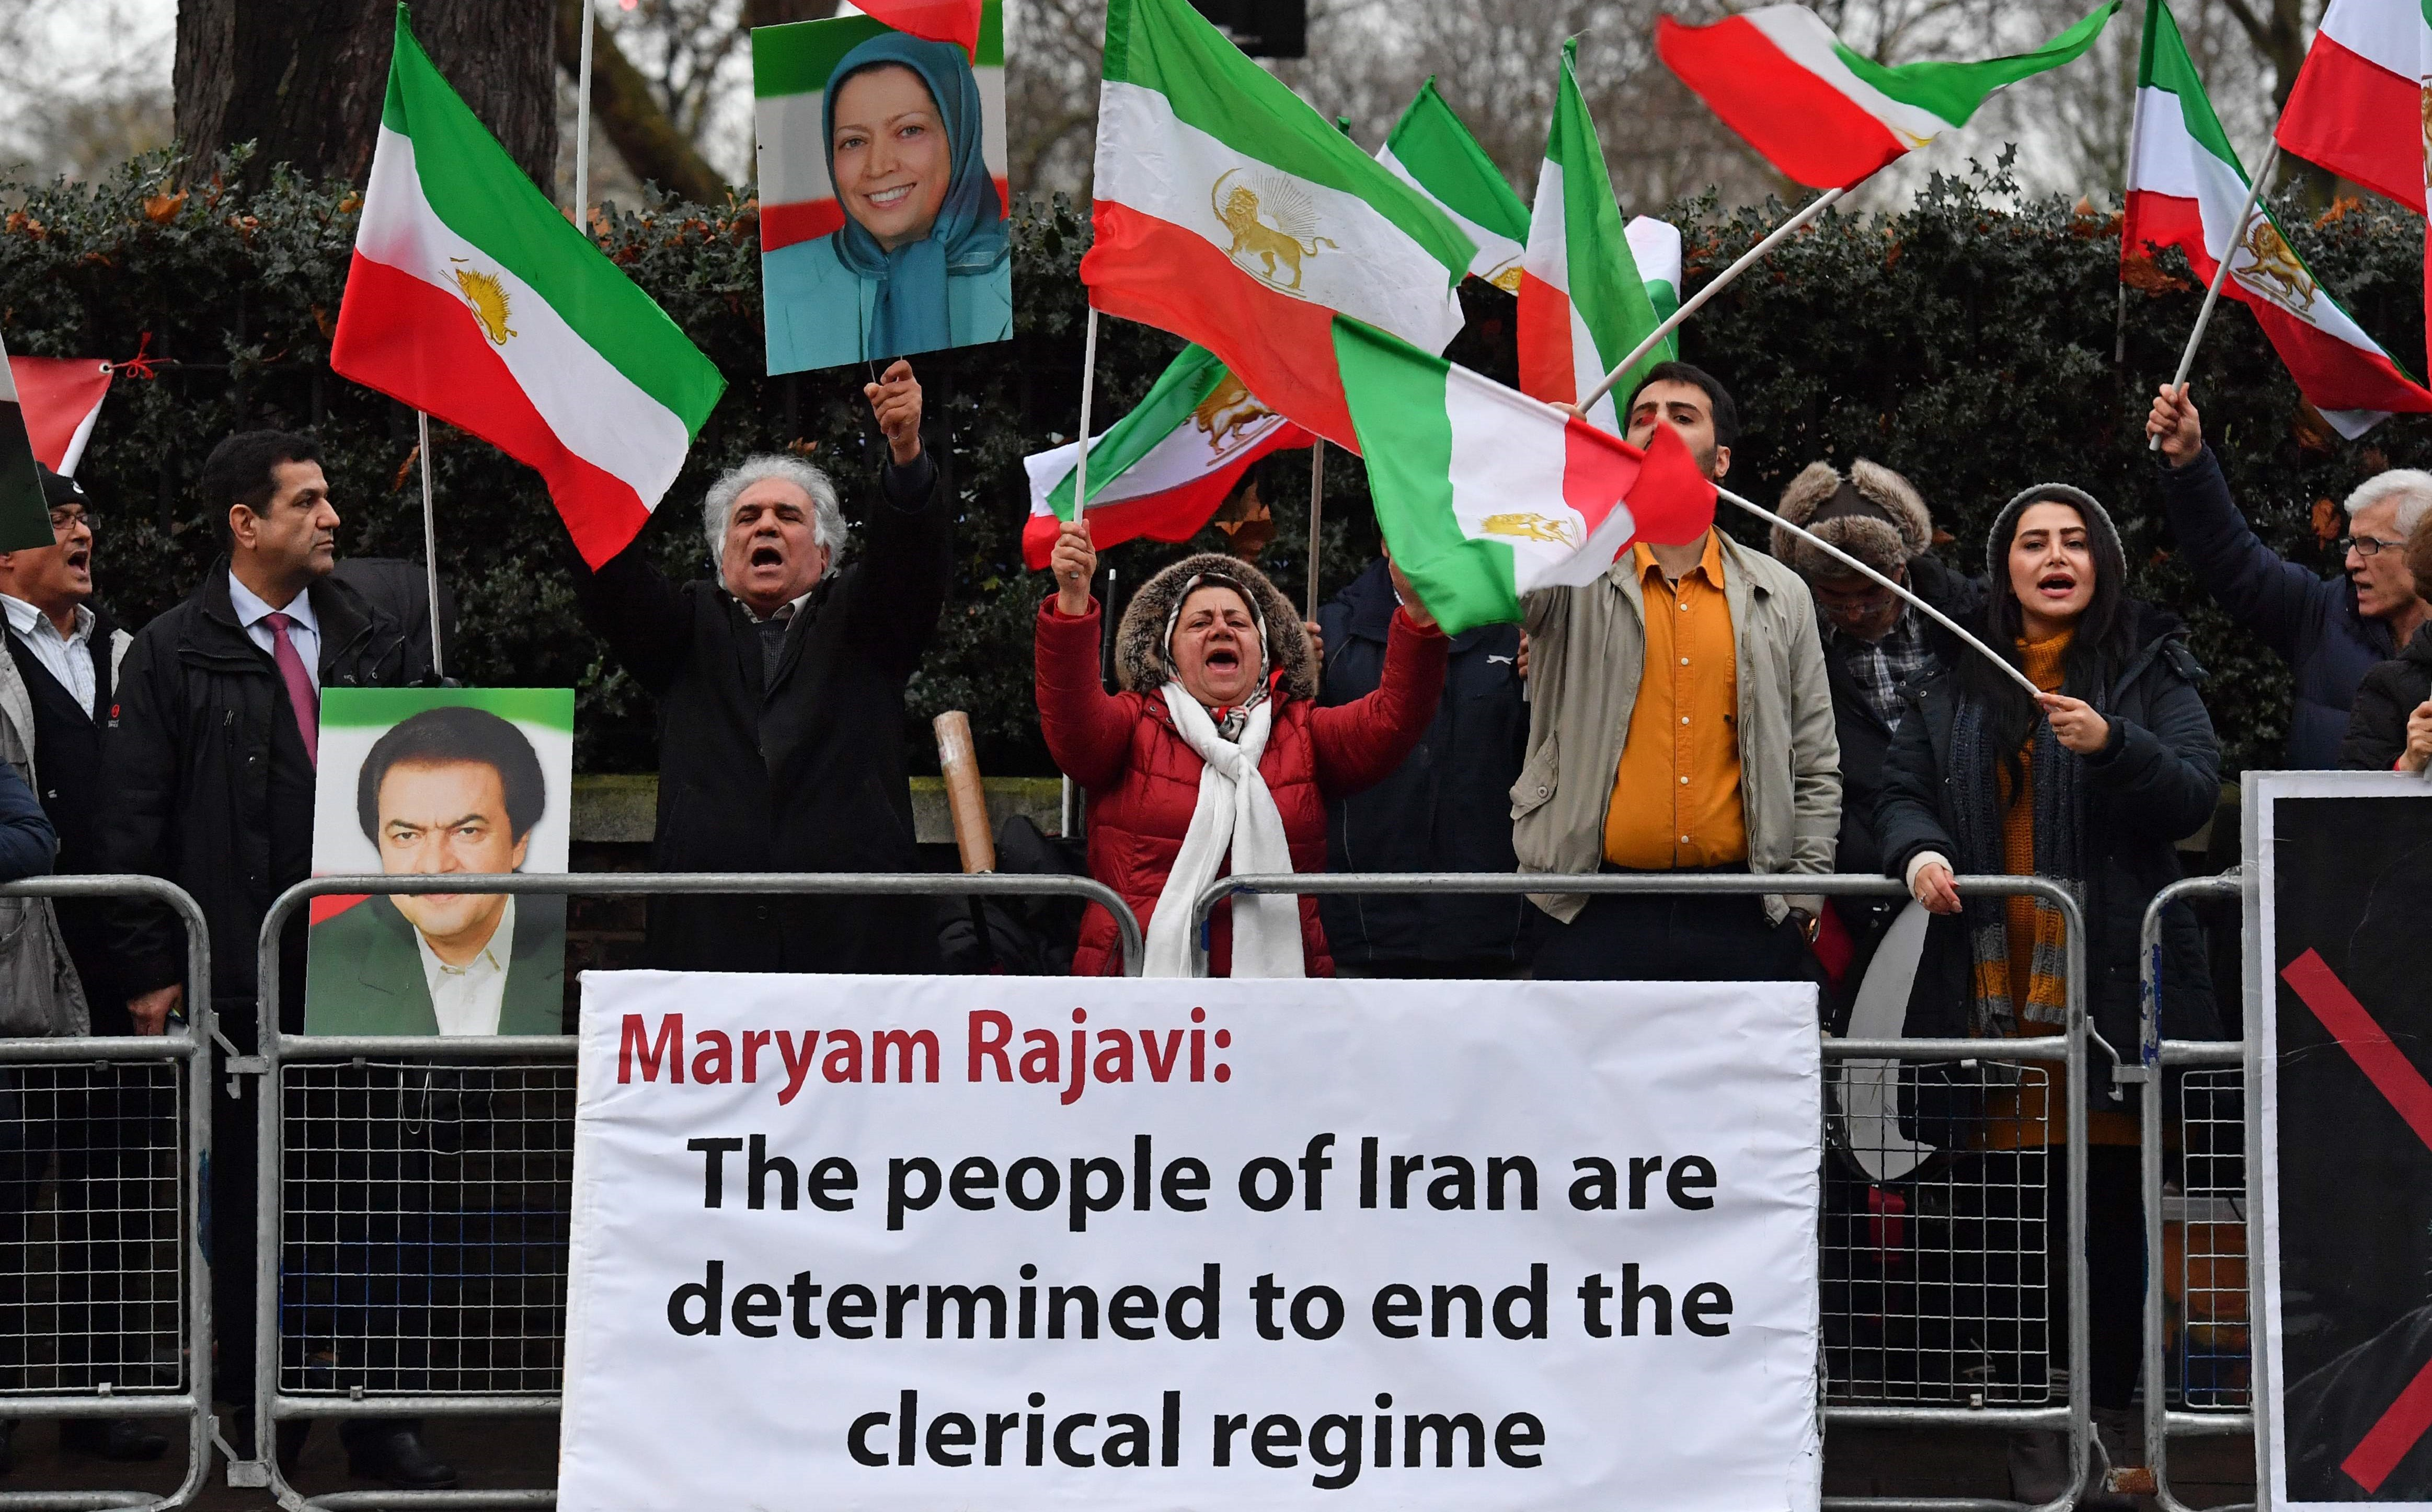 Protesters gather in front of the Iranian Embassy in London on Tuesday, supporting anti-government demonstrations in Iran. Photo: Ben Stansall/AFP